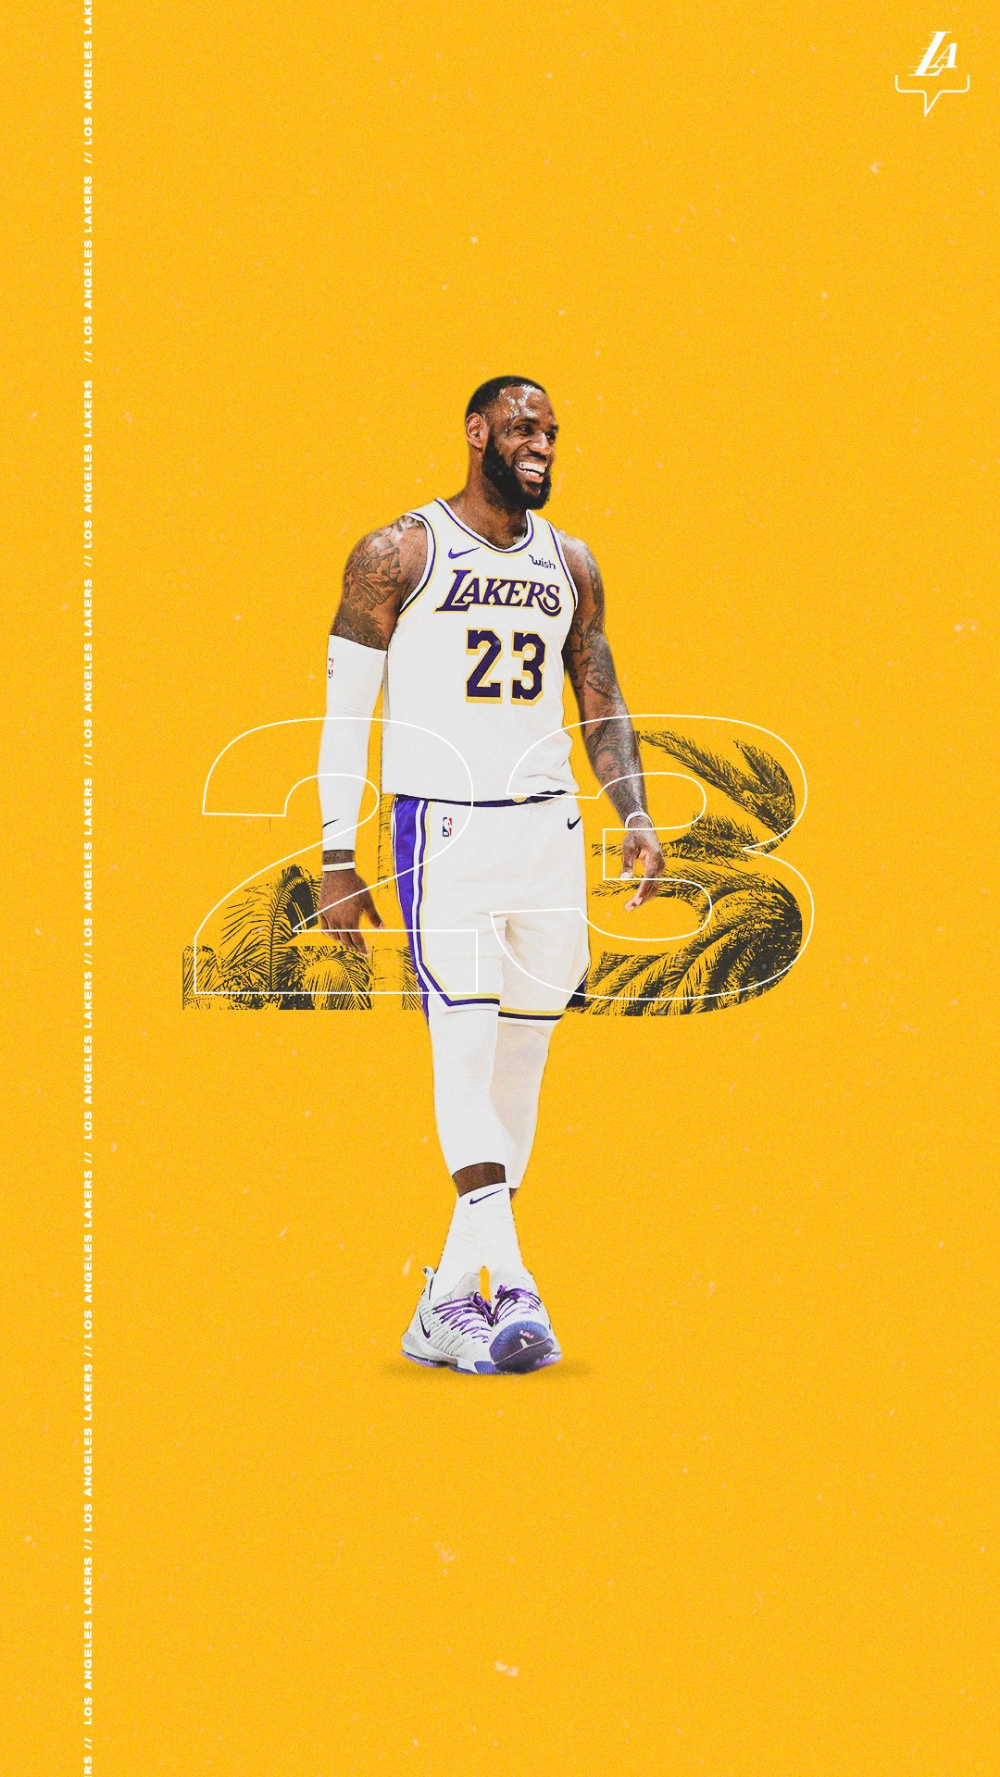 Los Angeles Lakers On Lebron James Wallpapers Lebron James Lakers Wallpaper